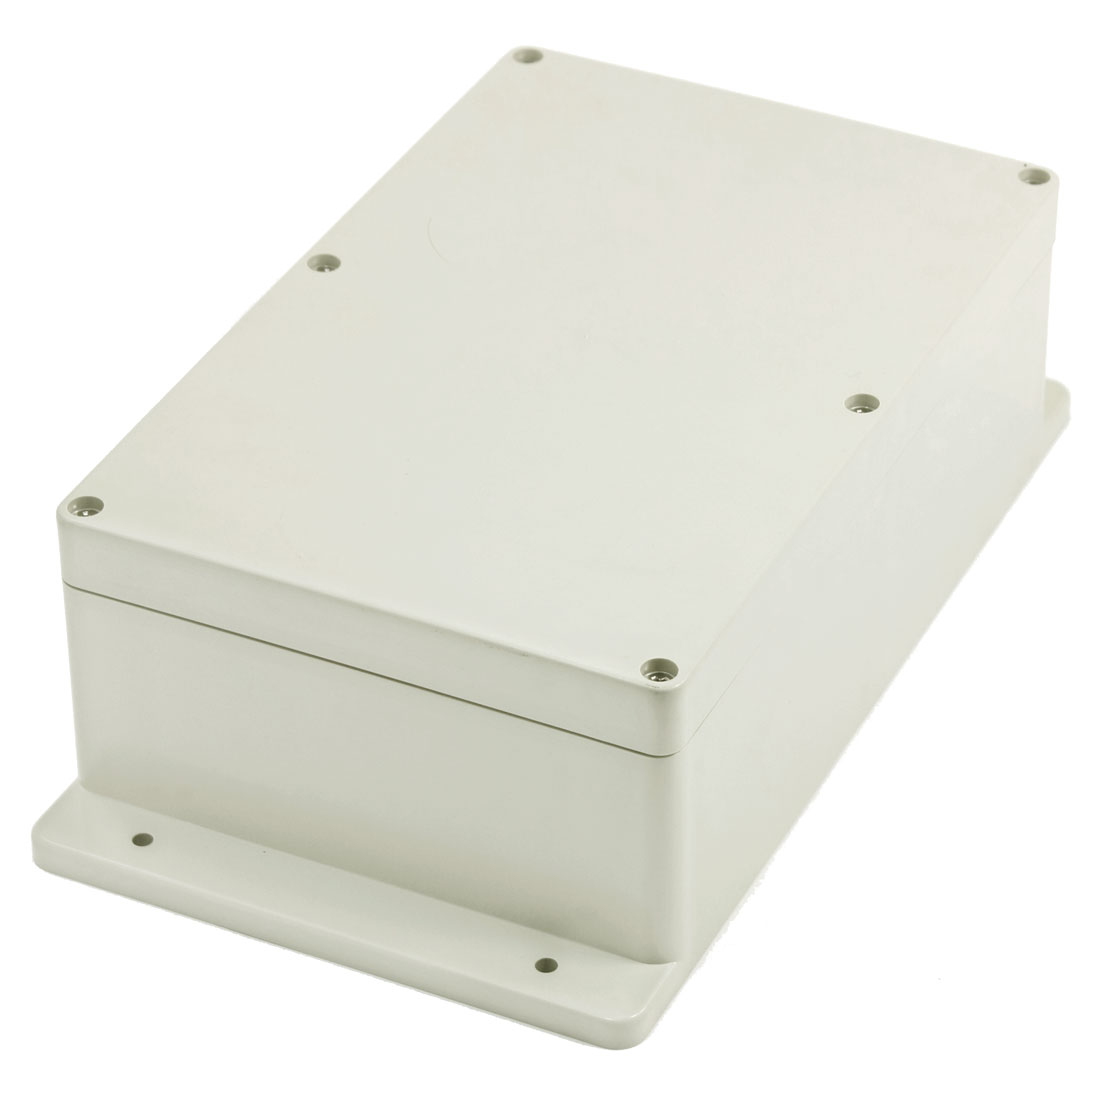 272x150x83mm-Waterproof-Power-Project-Plastic-Enclose-Case-Junction-Box